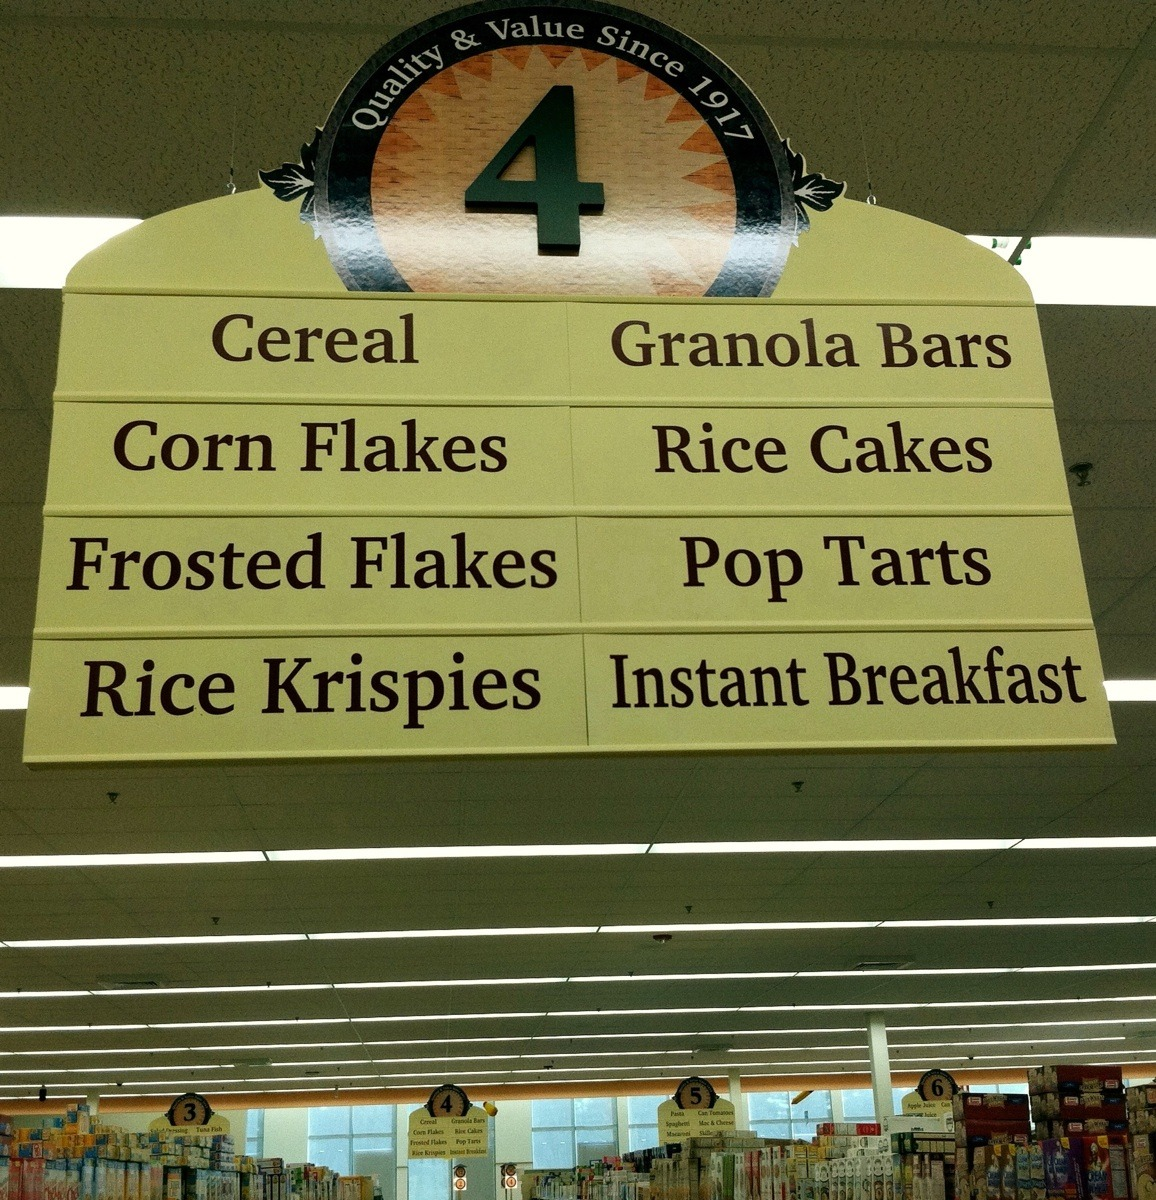 sblaufuss:  smartasshat:  Oh! Cereal AND Corn Flakes, Frosted Flakes, and Rice Krispies. I see.  I would not even shop here because of shit like this.  I could go back and do a whole photoset on the signs with similarly egregious affronts to the intellect.